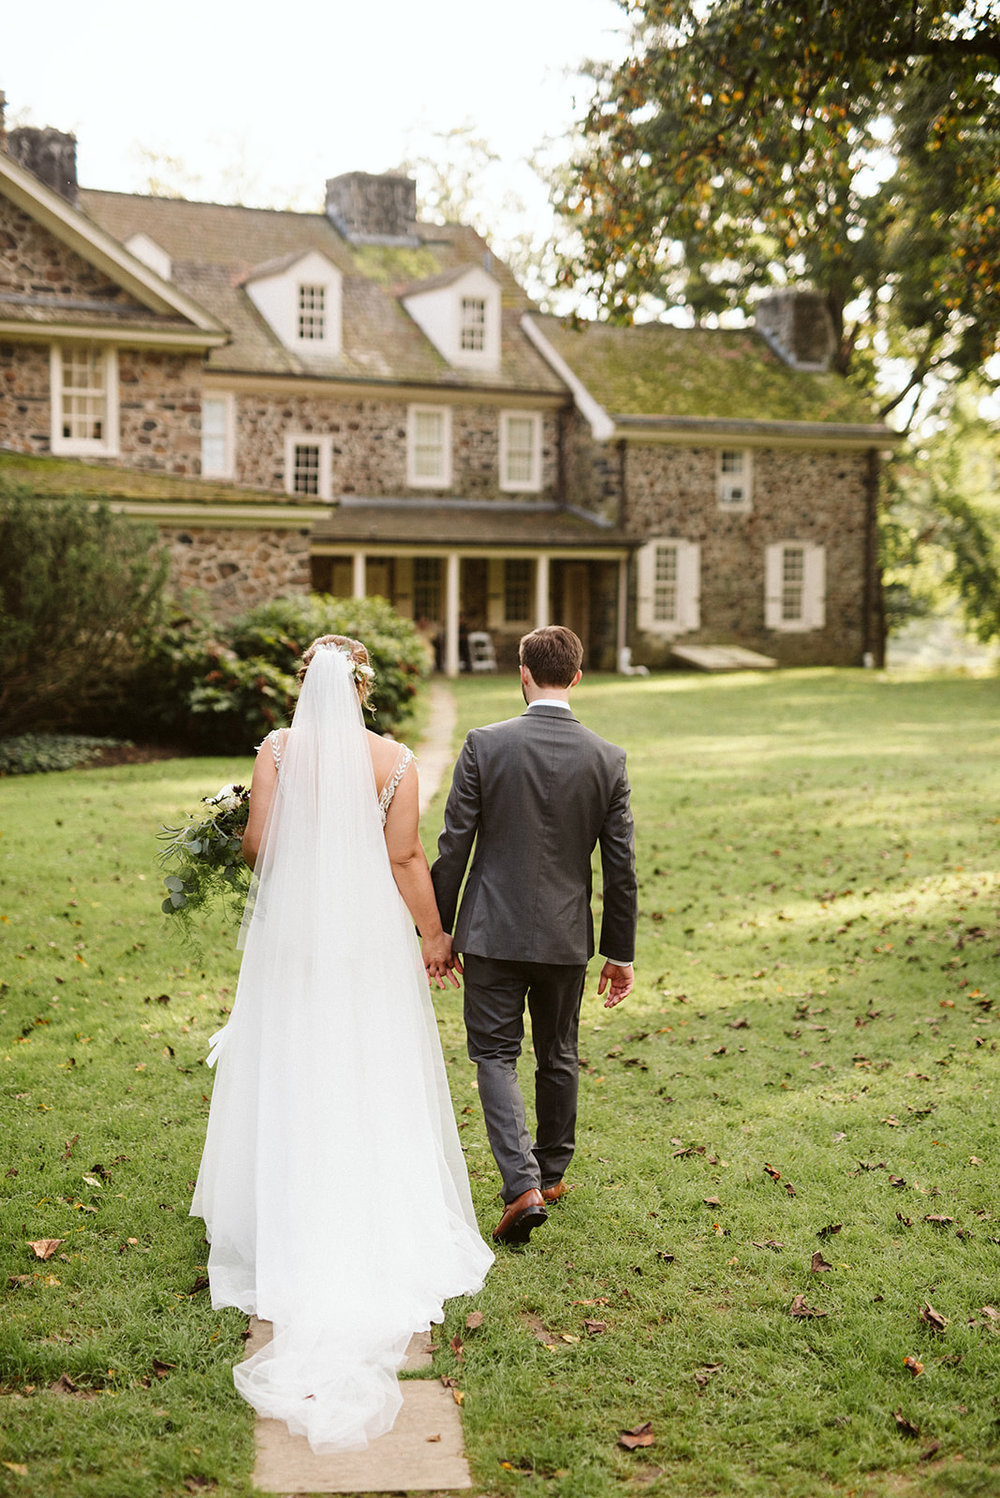 Anthony Wayne House Philadelphia PA Wedding Photographer